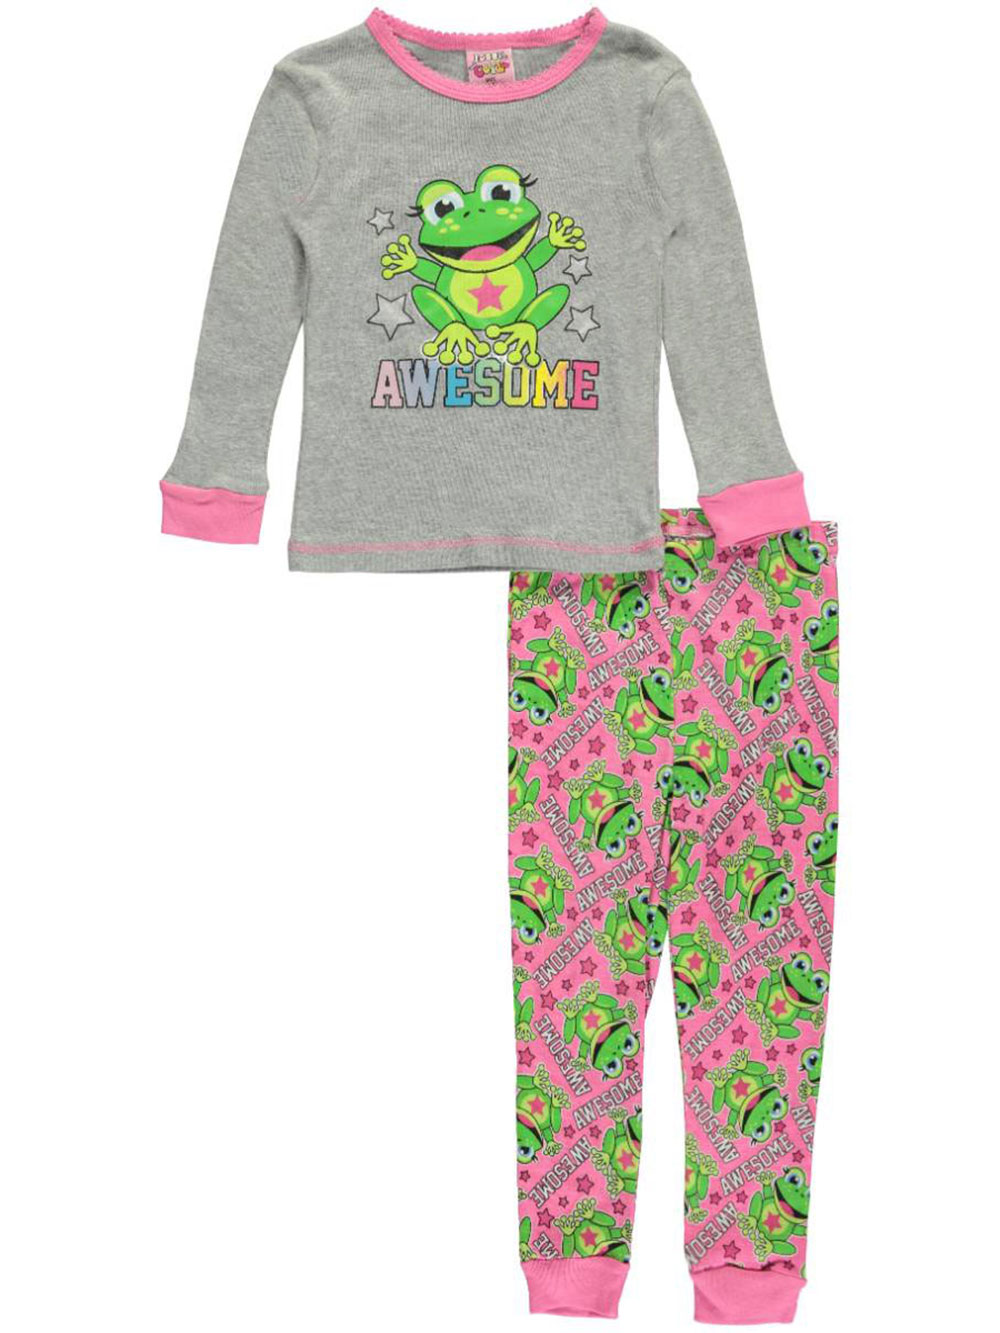 Image of 1000 Cute Little Girls Toddler Awesome Frog 2Piece Pajamas Sizes 2T  4T